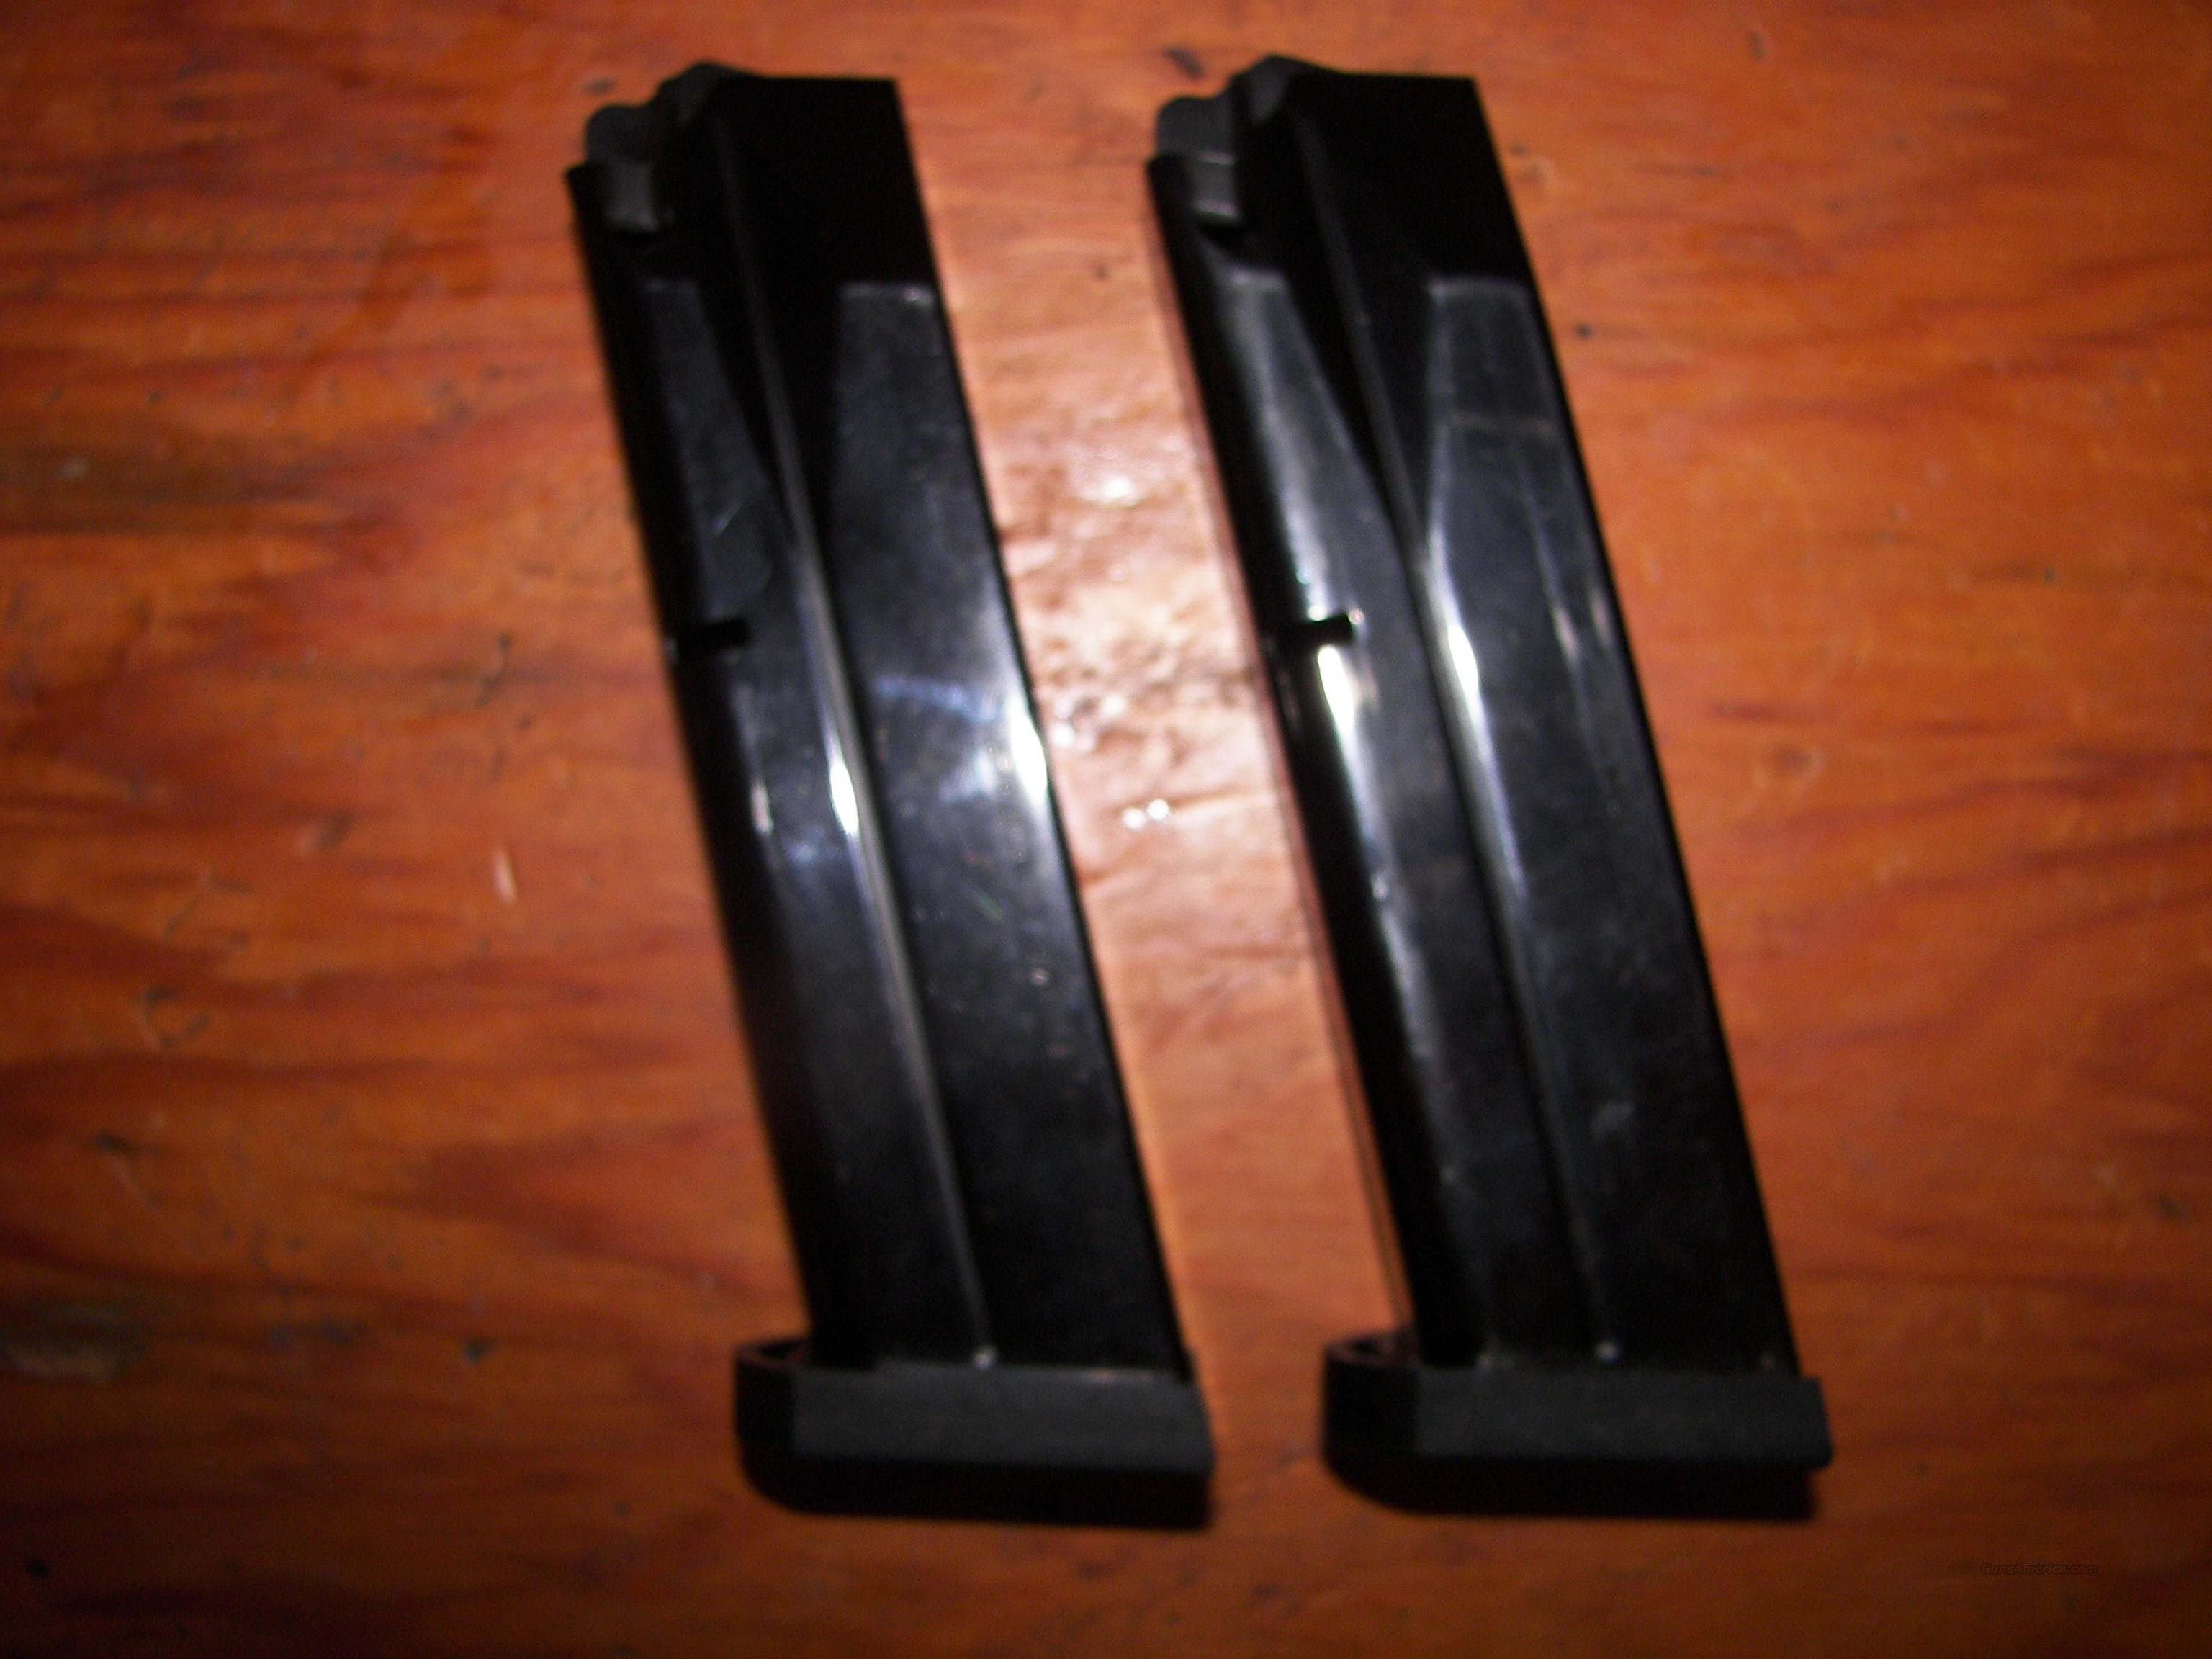 Beretta 92 9mm 17 Round Magazines, Sold As A Pair  Non-Guns > Magazines & Clips > Pistol Magazines > Beretta